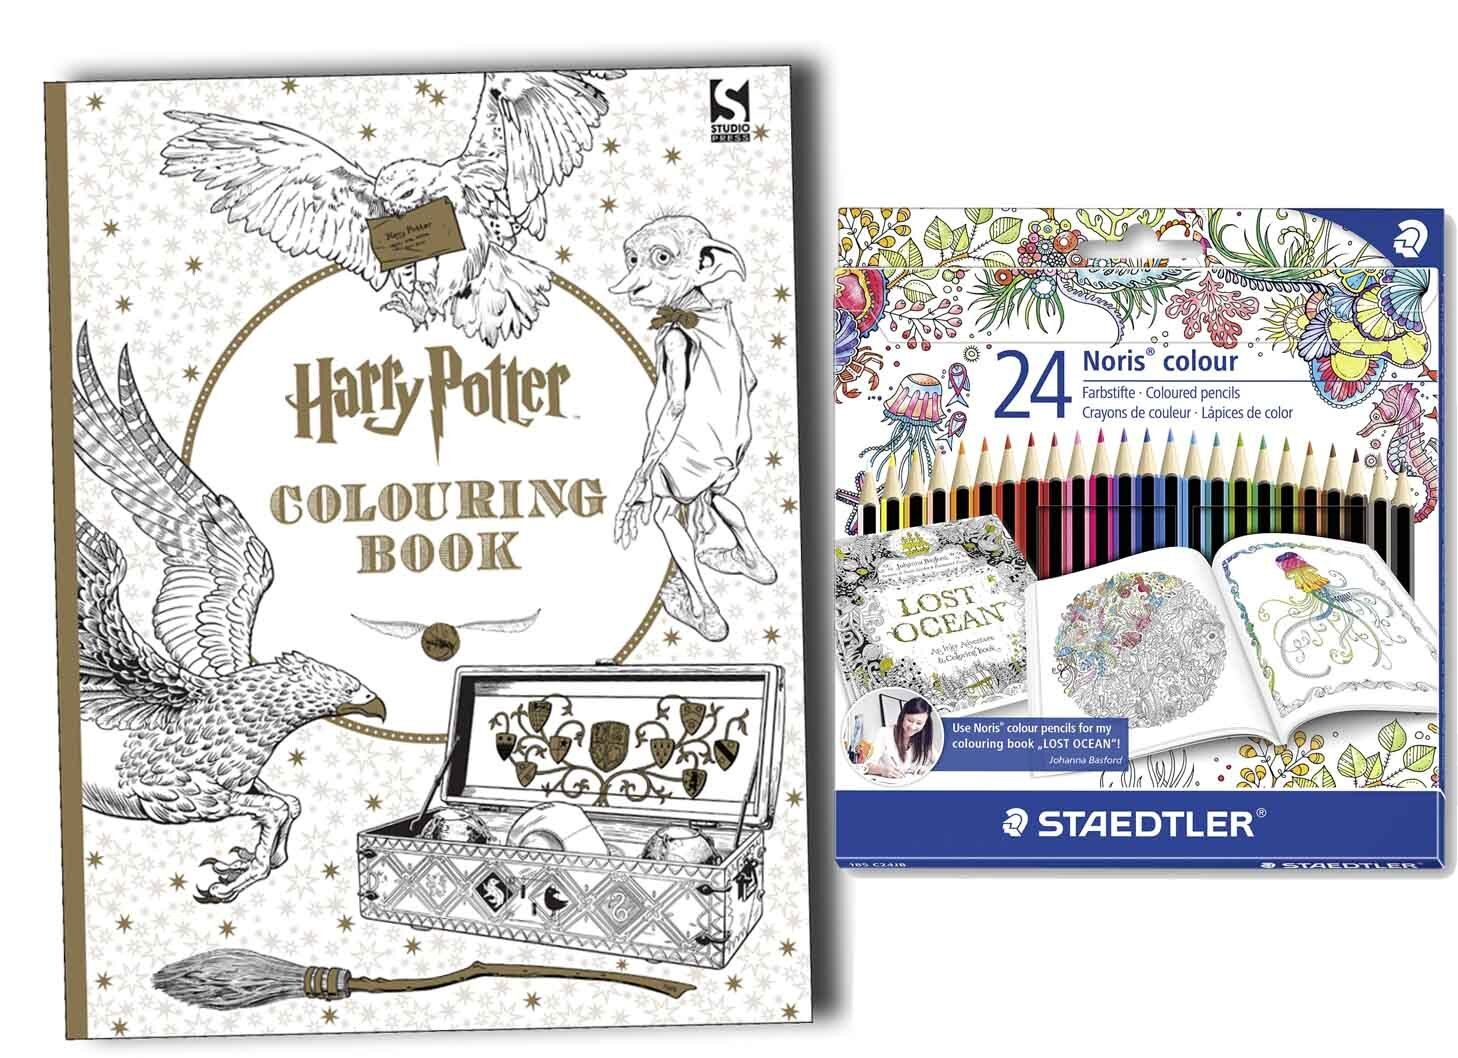 Harry Potter Colouring Book With Pack Of 24 STAEDTLER